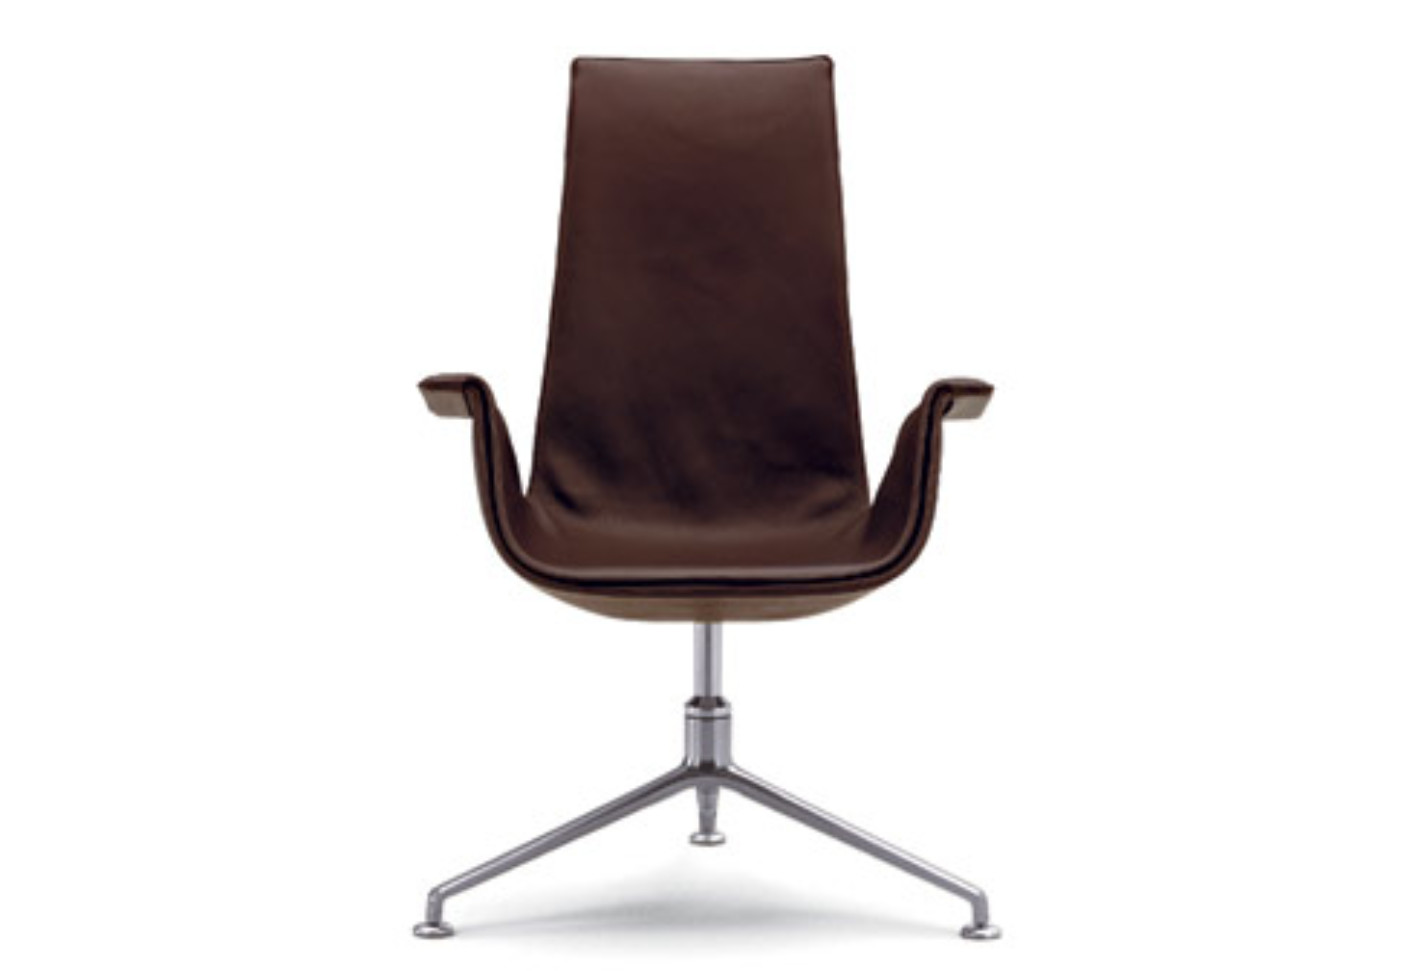 FK Chair By Walter Knoll